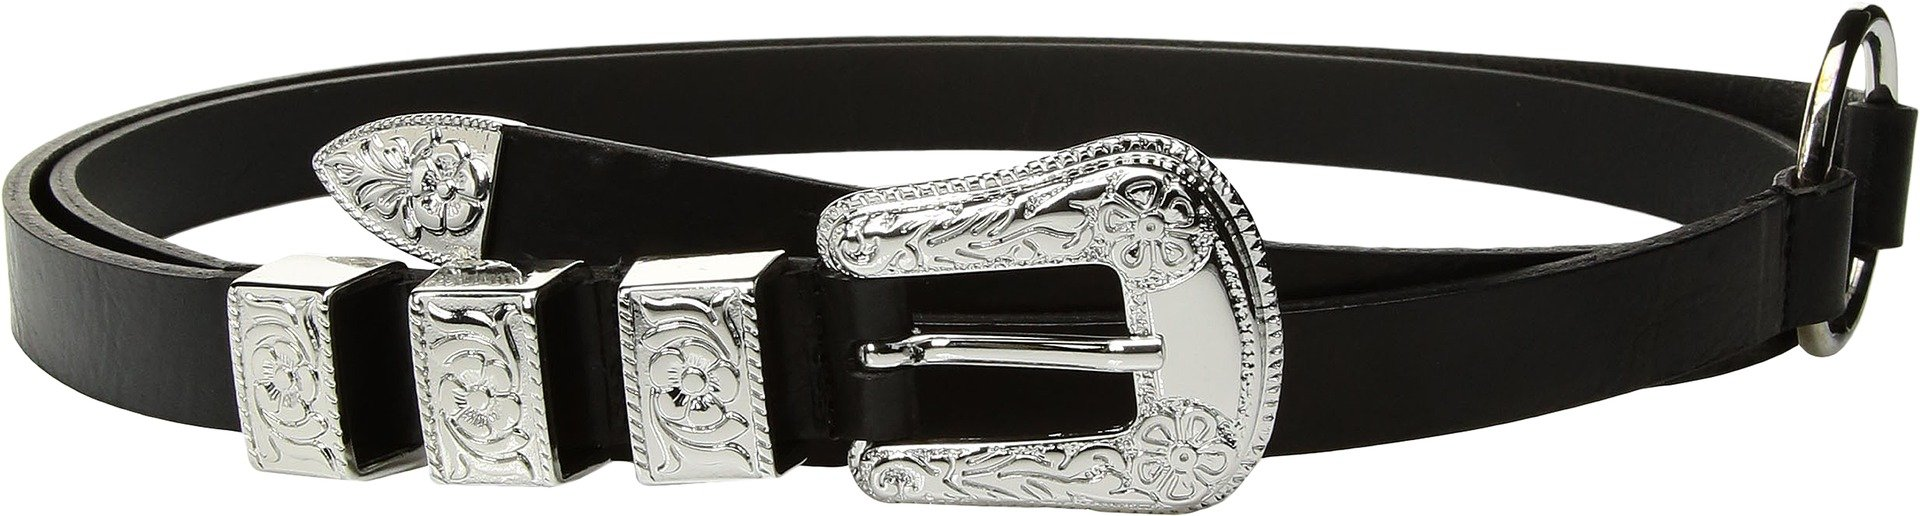 McQ - Alexander McQueen Women's Solstice Double Wrap Belt, Black, Medium by McQ Alexander McQueen